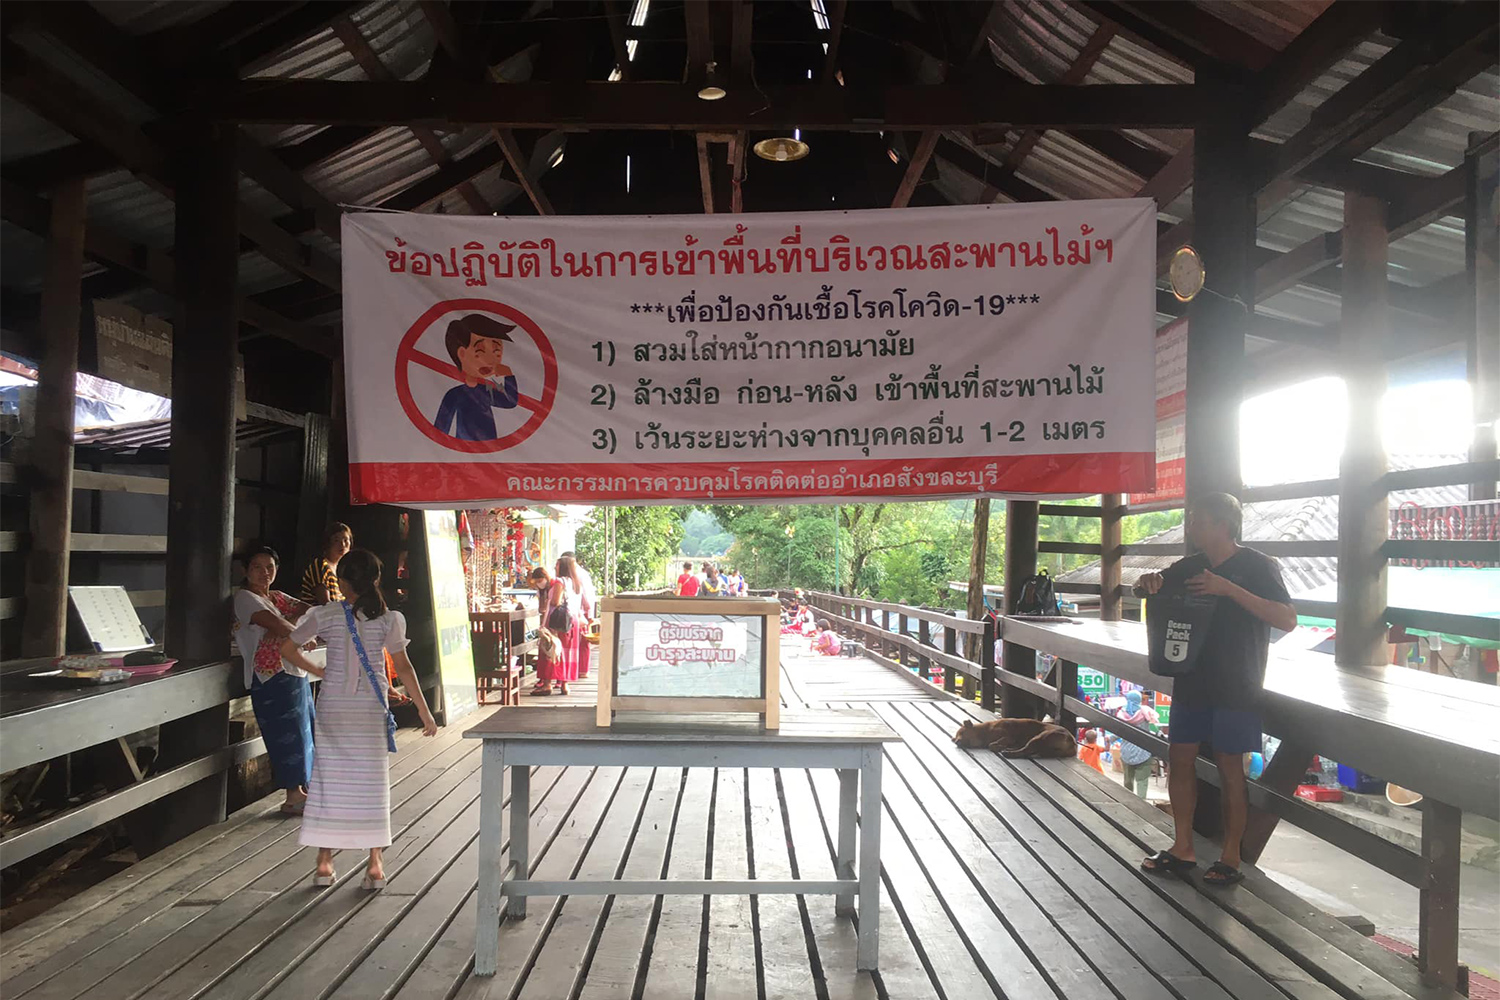 A banner reminds residents and visitors not to lower their guard against Covid-19 at the famous Mon Bridge in Sangkhla Buri district of Kanchanaburi. (Photo: Piyarach Chongcharoen)